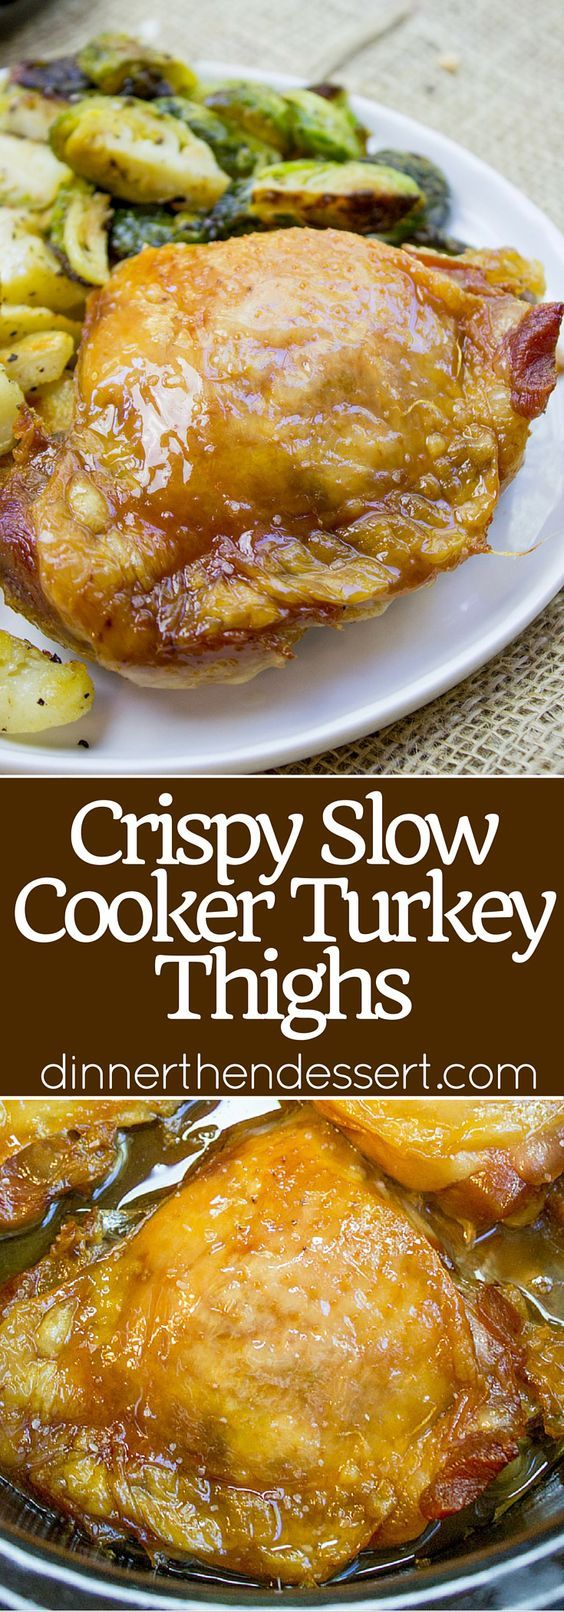 Crispy Slow Cooker Turkey Thighs are juicy, crispy, tender and a total breeze to make on a weeknight! Also includes 10 different ways to add different flavors with almost no effort! @eatturkey #ad